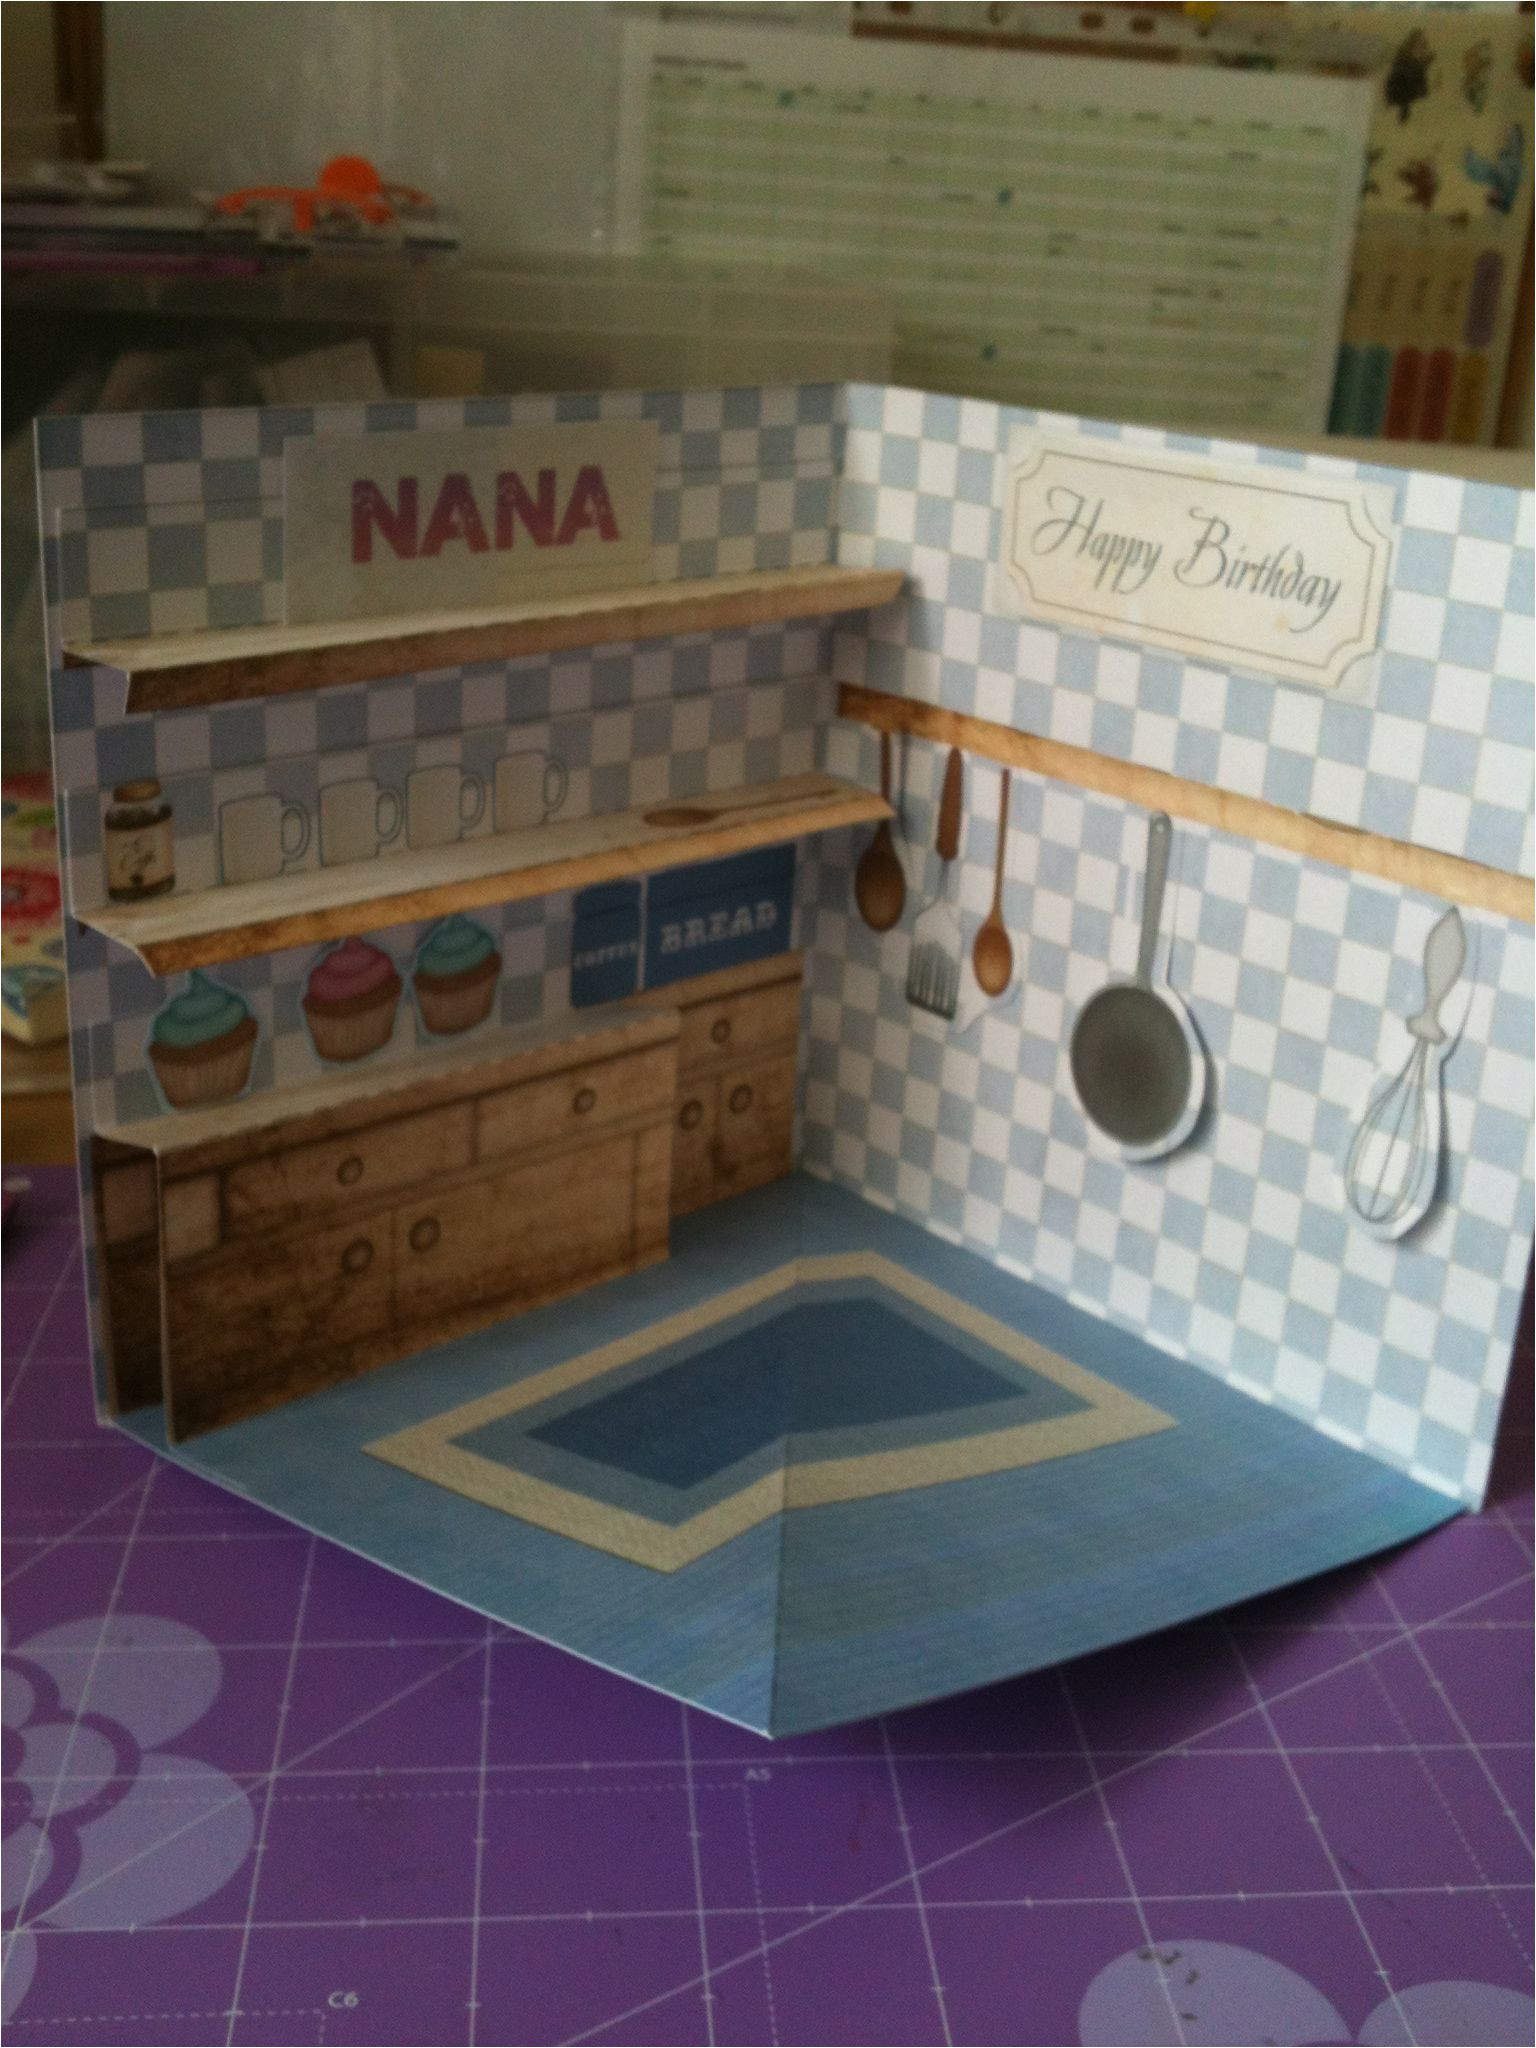 Diy Xmas Pop Up Card 3d Kitchen Card with Images Pop Up Cards Greeting Cards